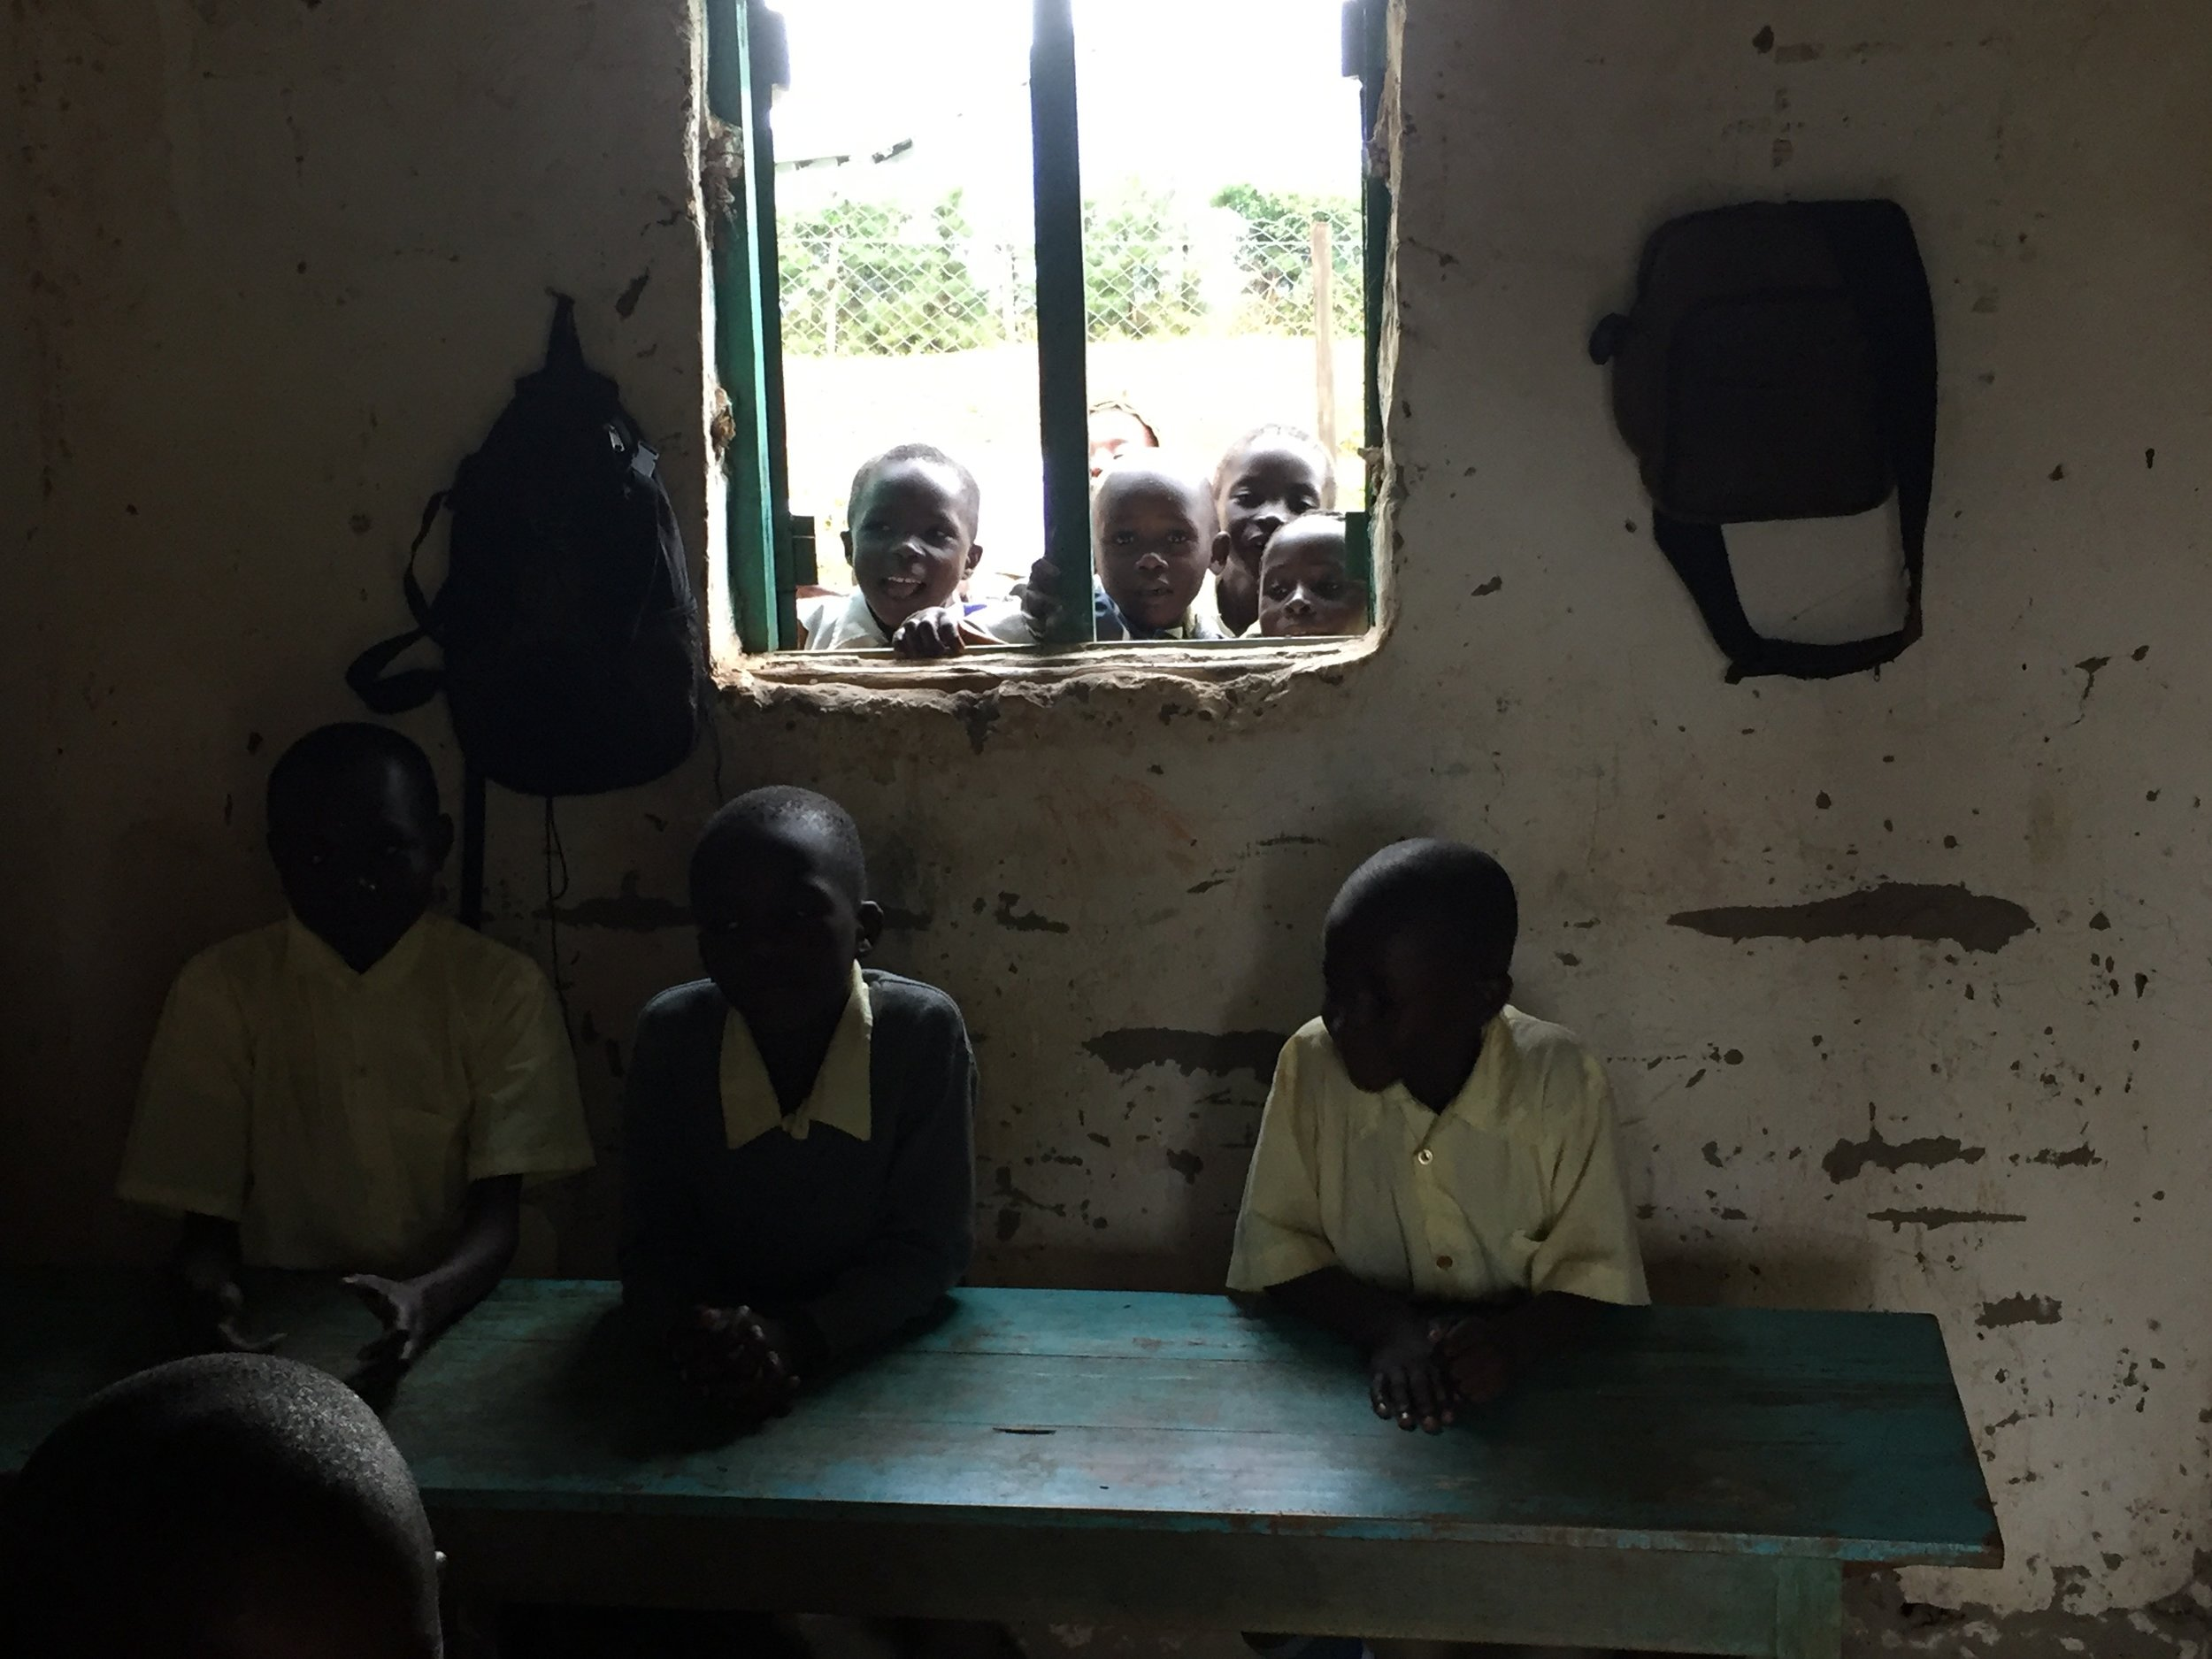 The classrooms were pretty small and had a single window. When the teacher wasn't instructing, students liked to gather in the windows to talk to their classmates in the rooms.